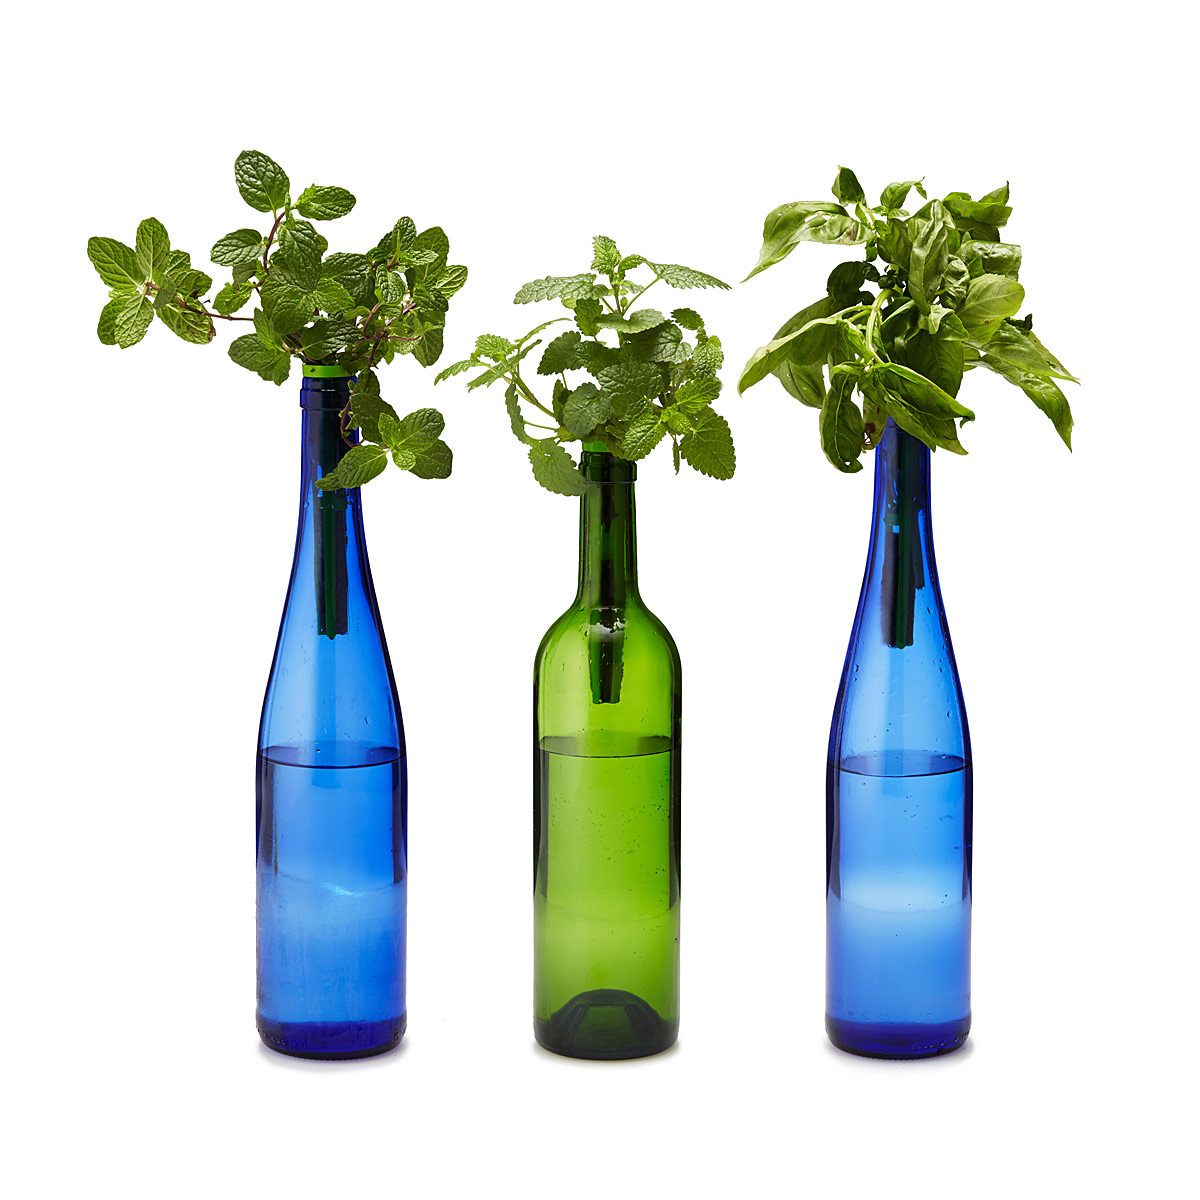 Bottle Stopper Hydroponic Herb Garden Kit The Green Head